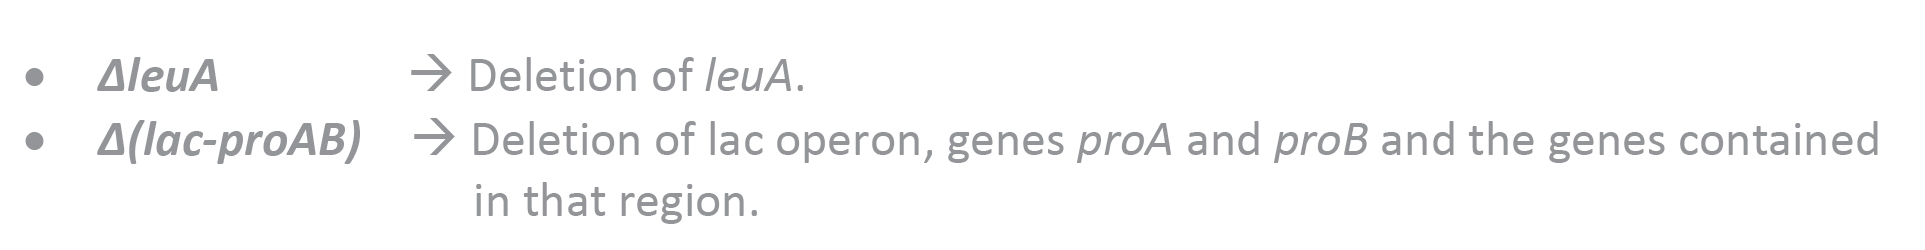 A deletion of a specific gene is indicated with ∆ and stated as ∆gene, where ∆ is placed before the gene name. If a deletion encompasses multiple genes, then it is written as ∆(gene-gene) indicating that a whole region including the genes listed and those in that segment are deleted.